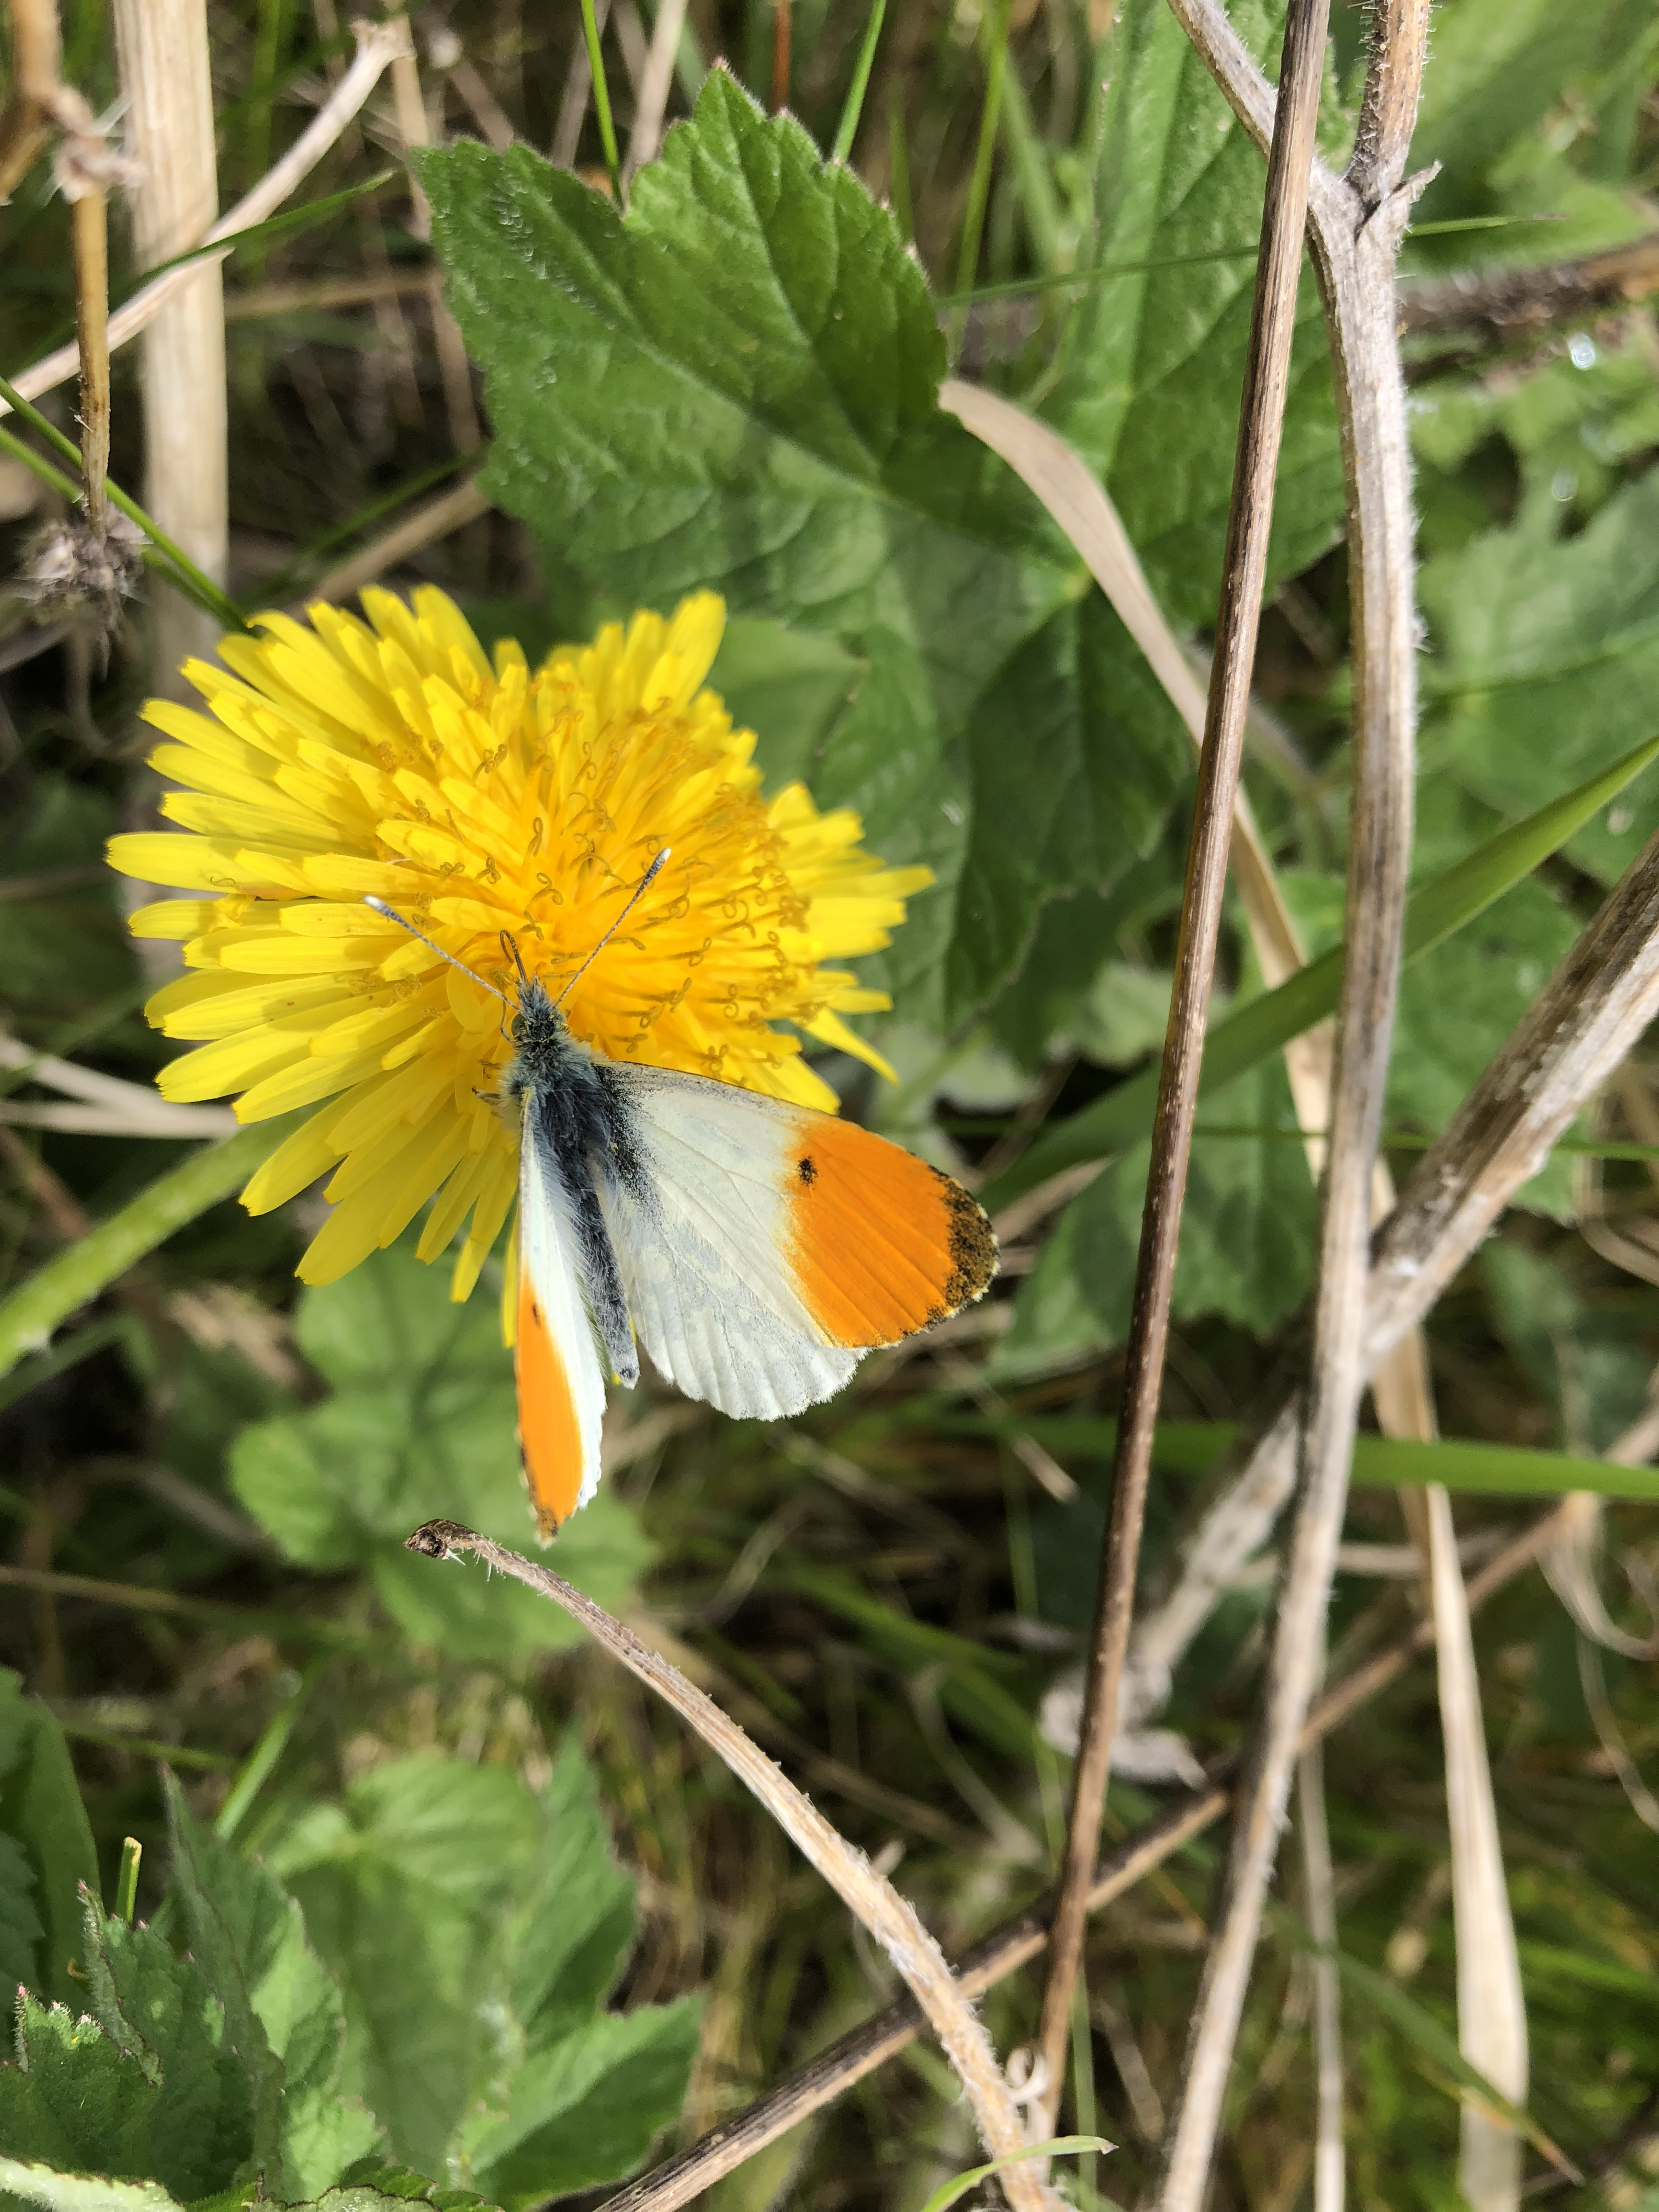 Dandelion and orange tip butterfly